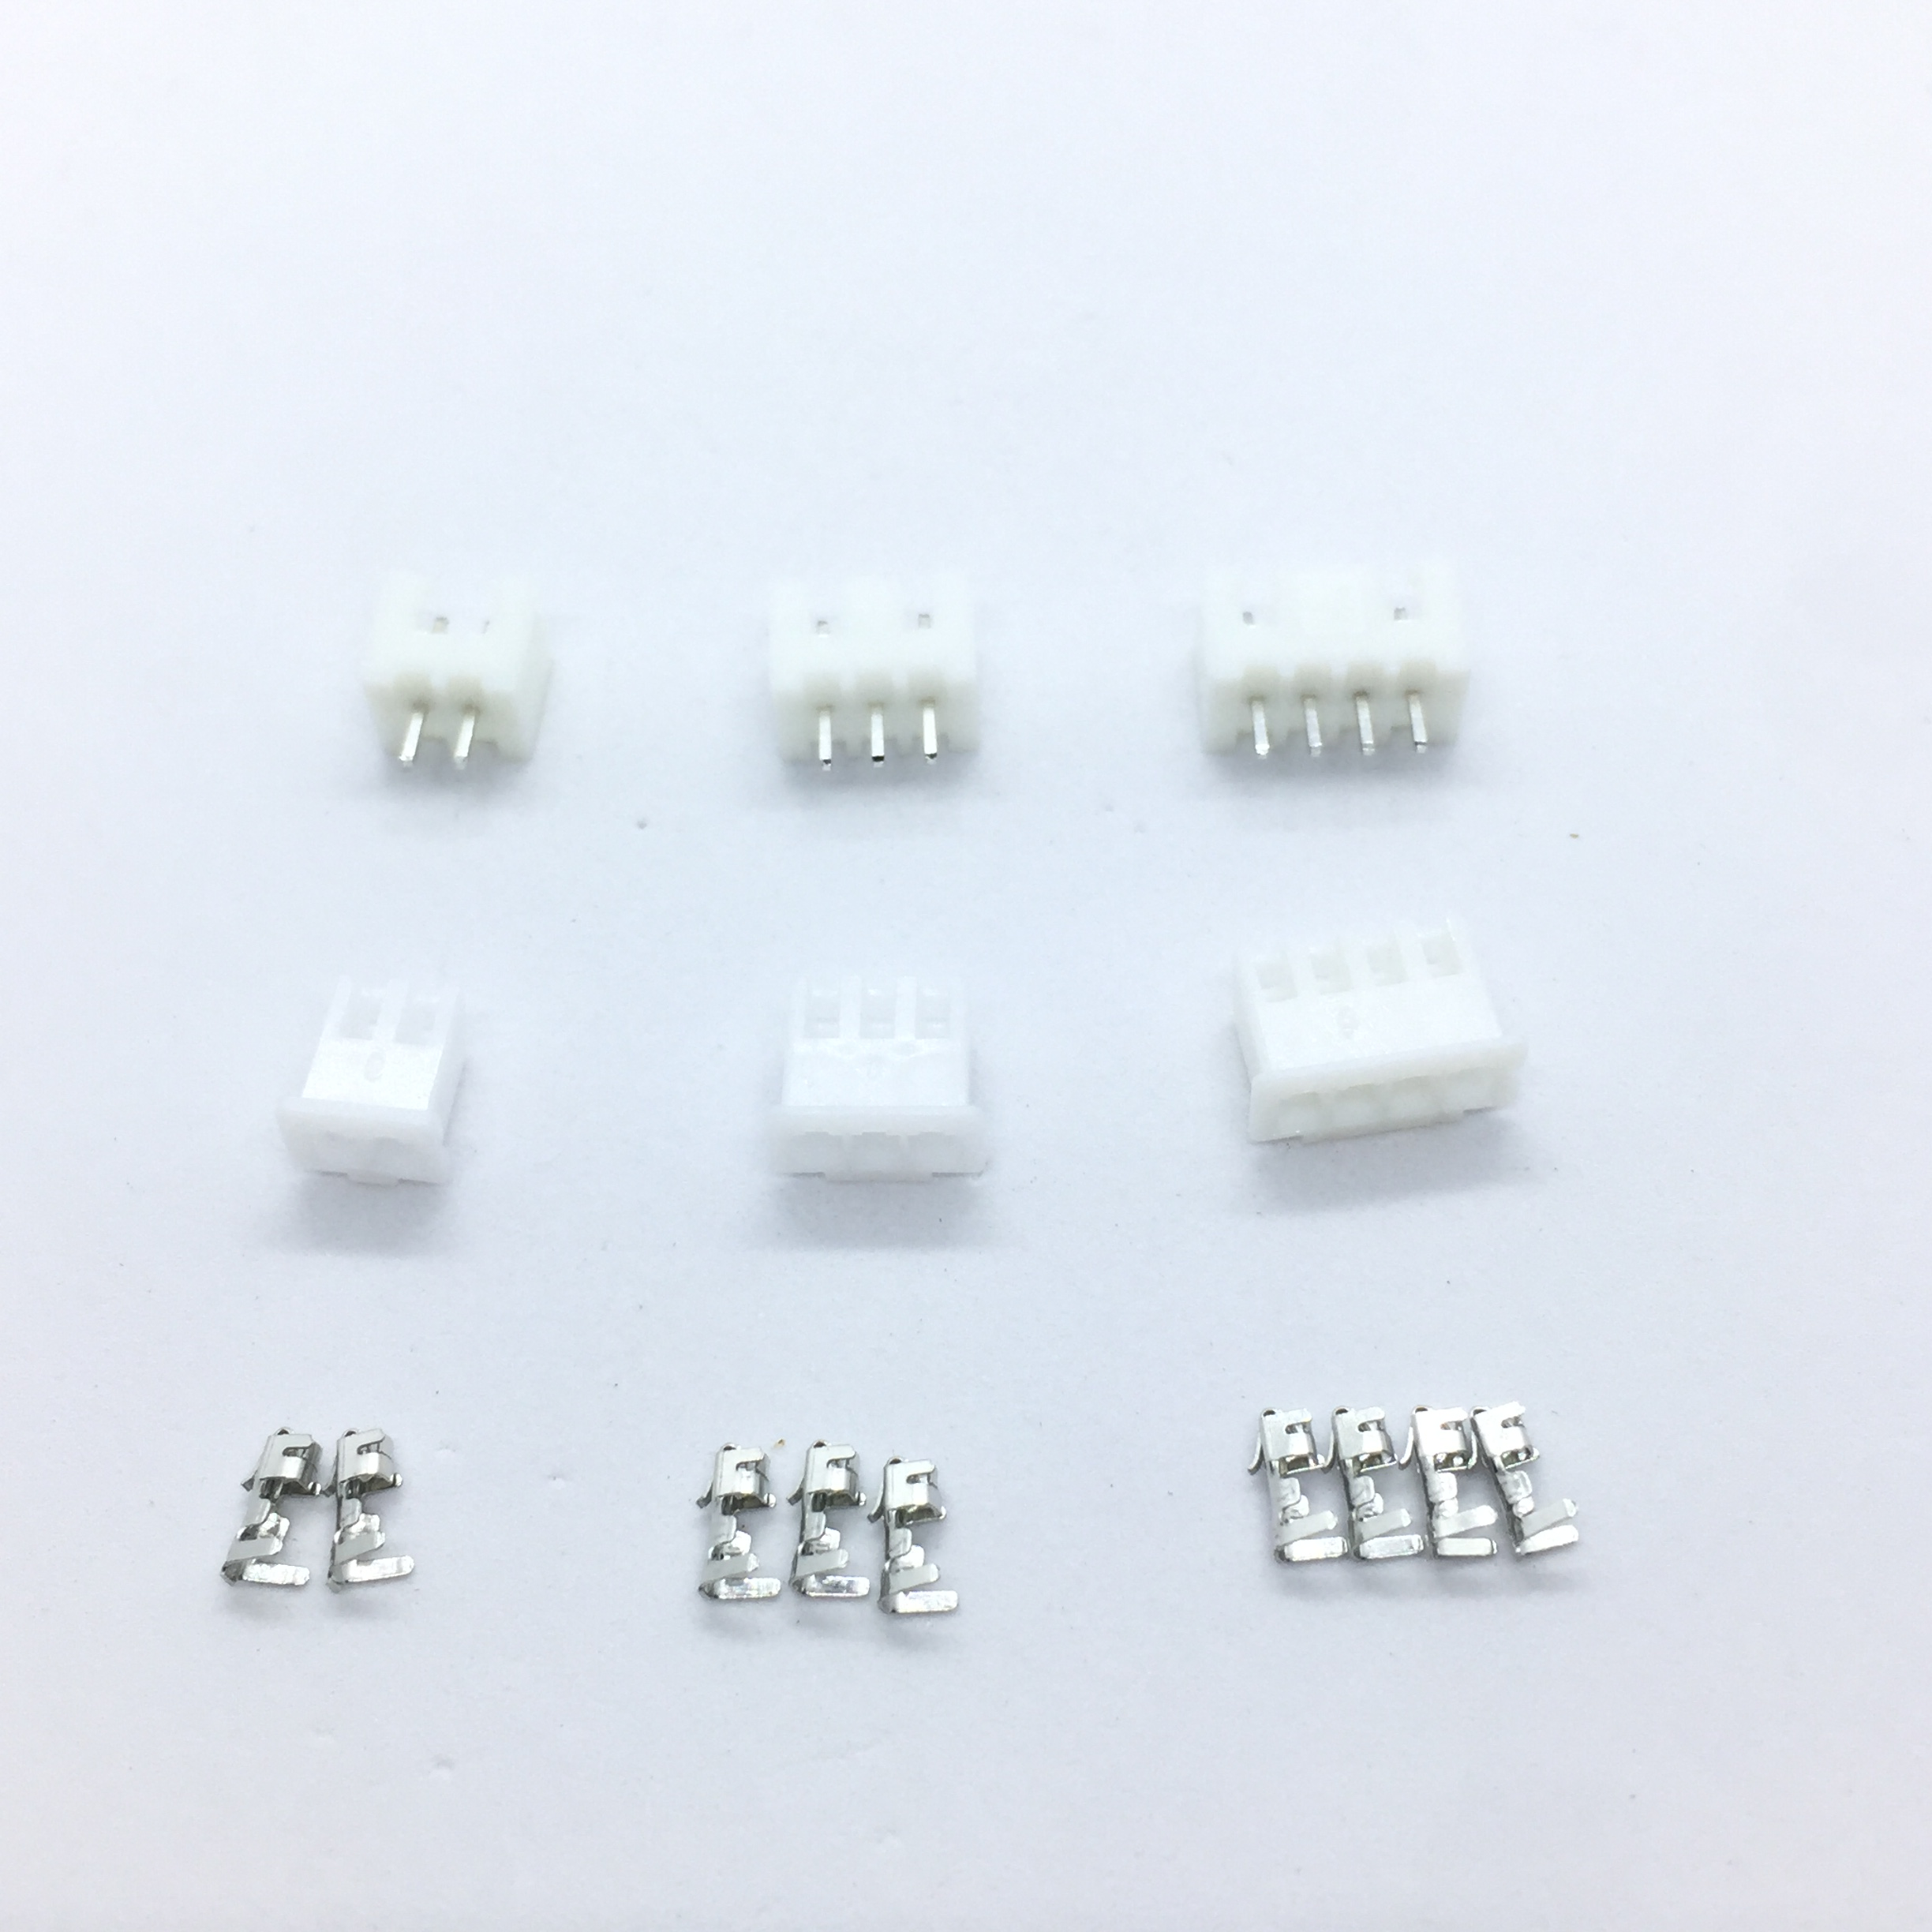 50 Sets Kit in box XH2.54 2p 3p 4 pin 2.54mm Pitch Terminal / Housing / Pin Header Connector Wire Connectors Adaptor XH2P 1000pcs dupont jumper wire cable housing female pin contor terminal 2 54mm new